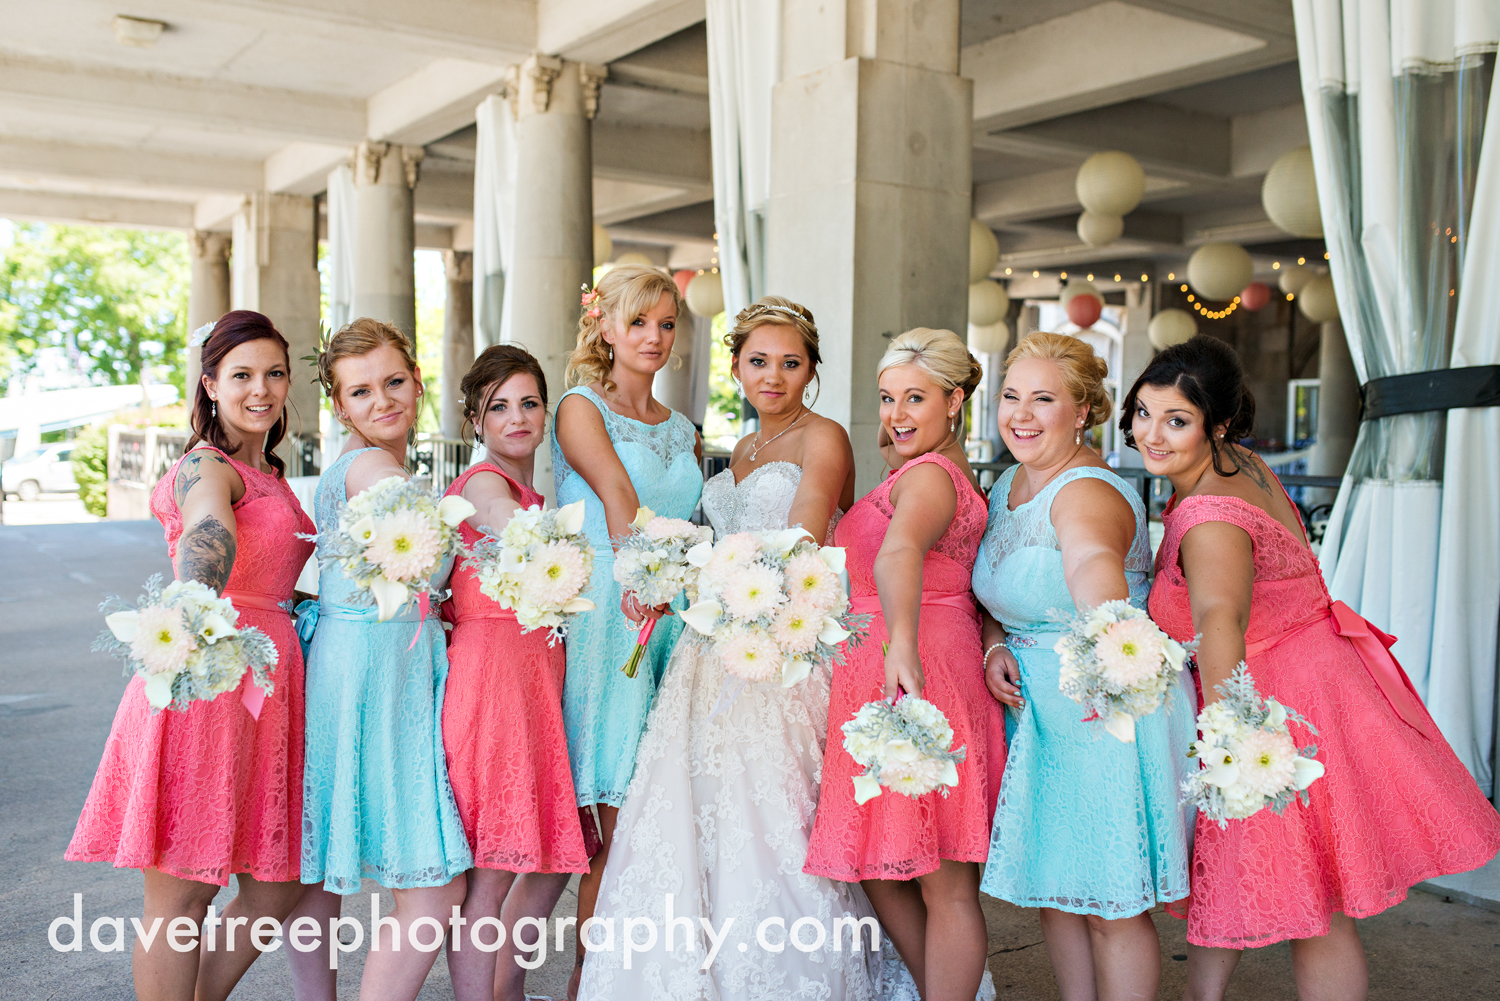 veranda_wedding_photographer_st_joseph_wedding_157.jpg